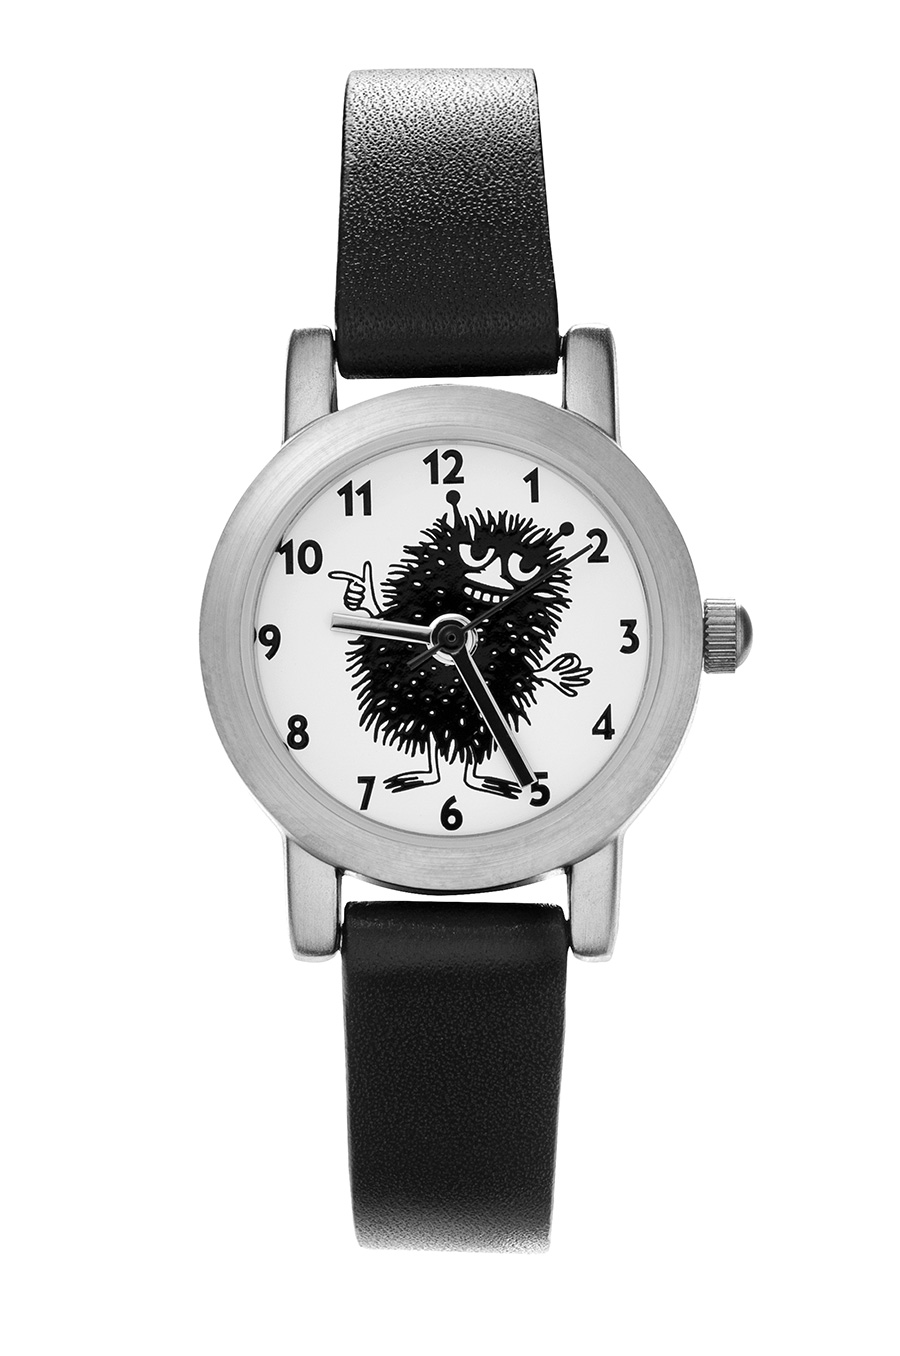 Saurum Stinky watch